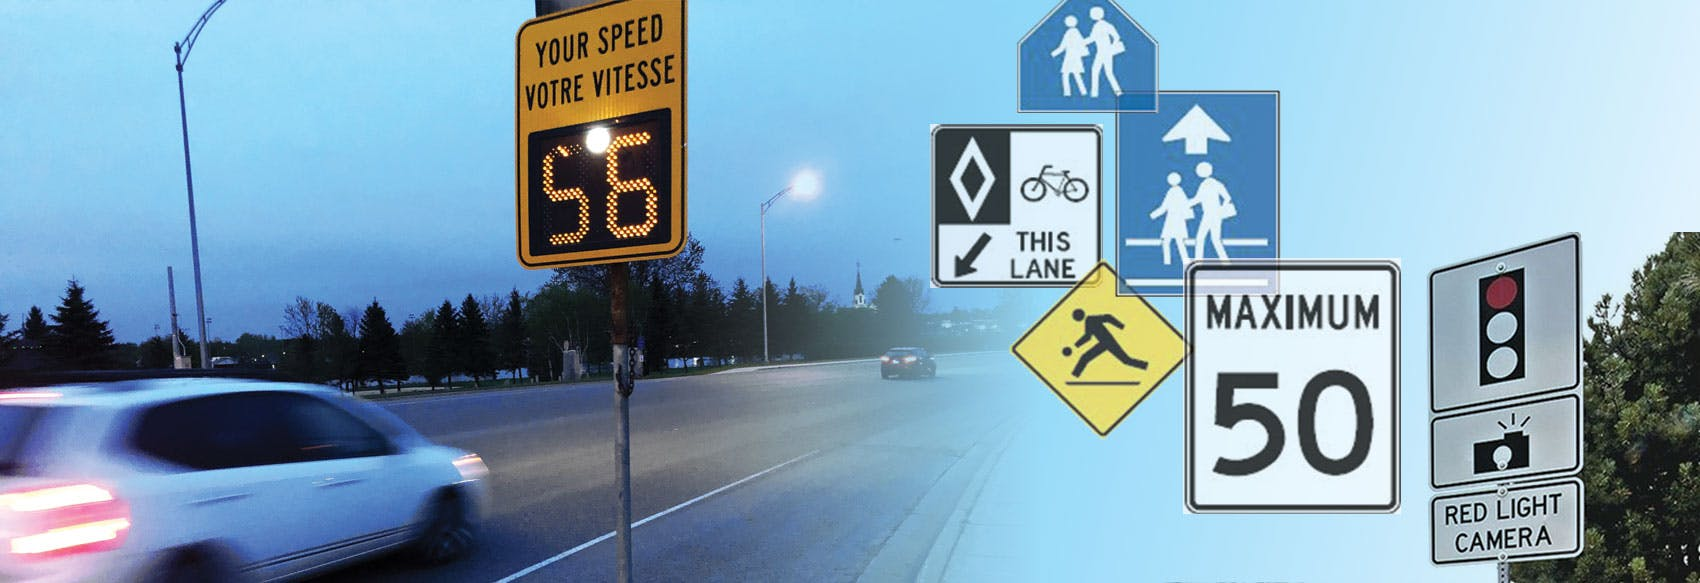 Community road safety strategy